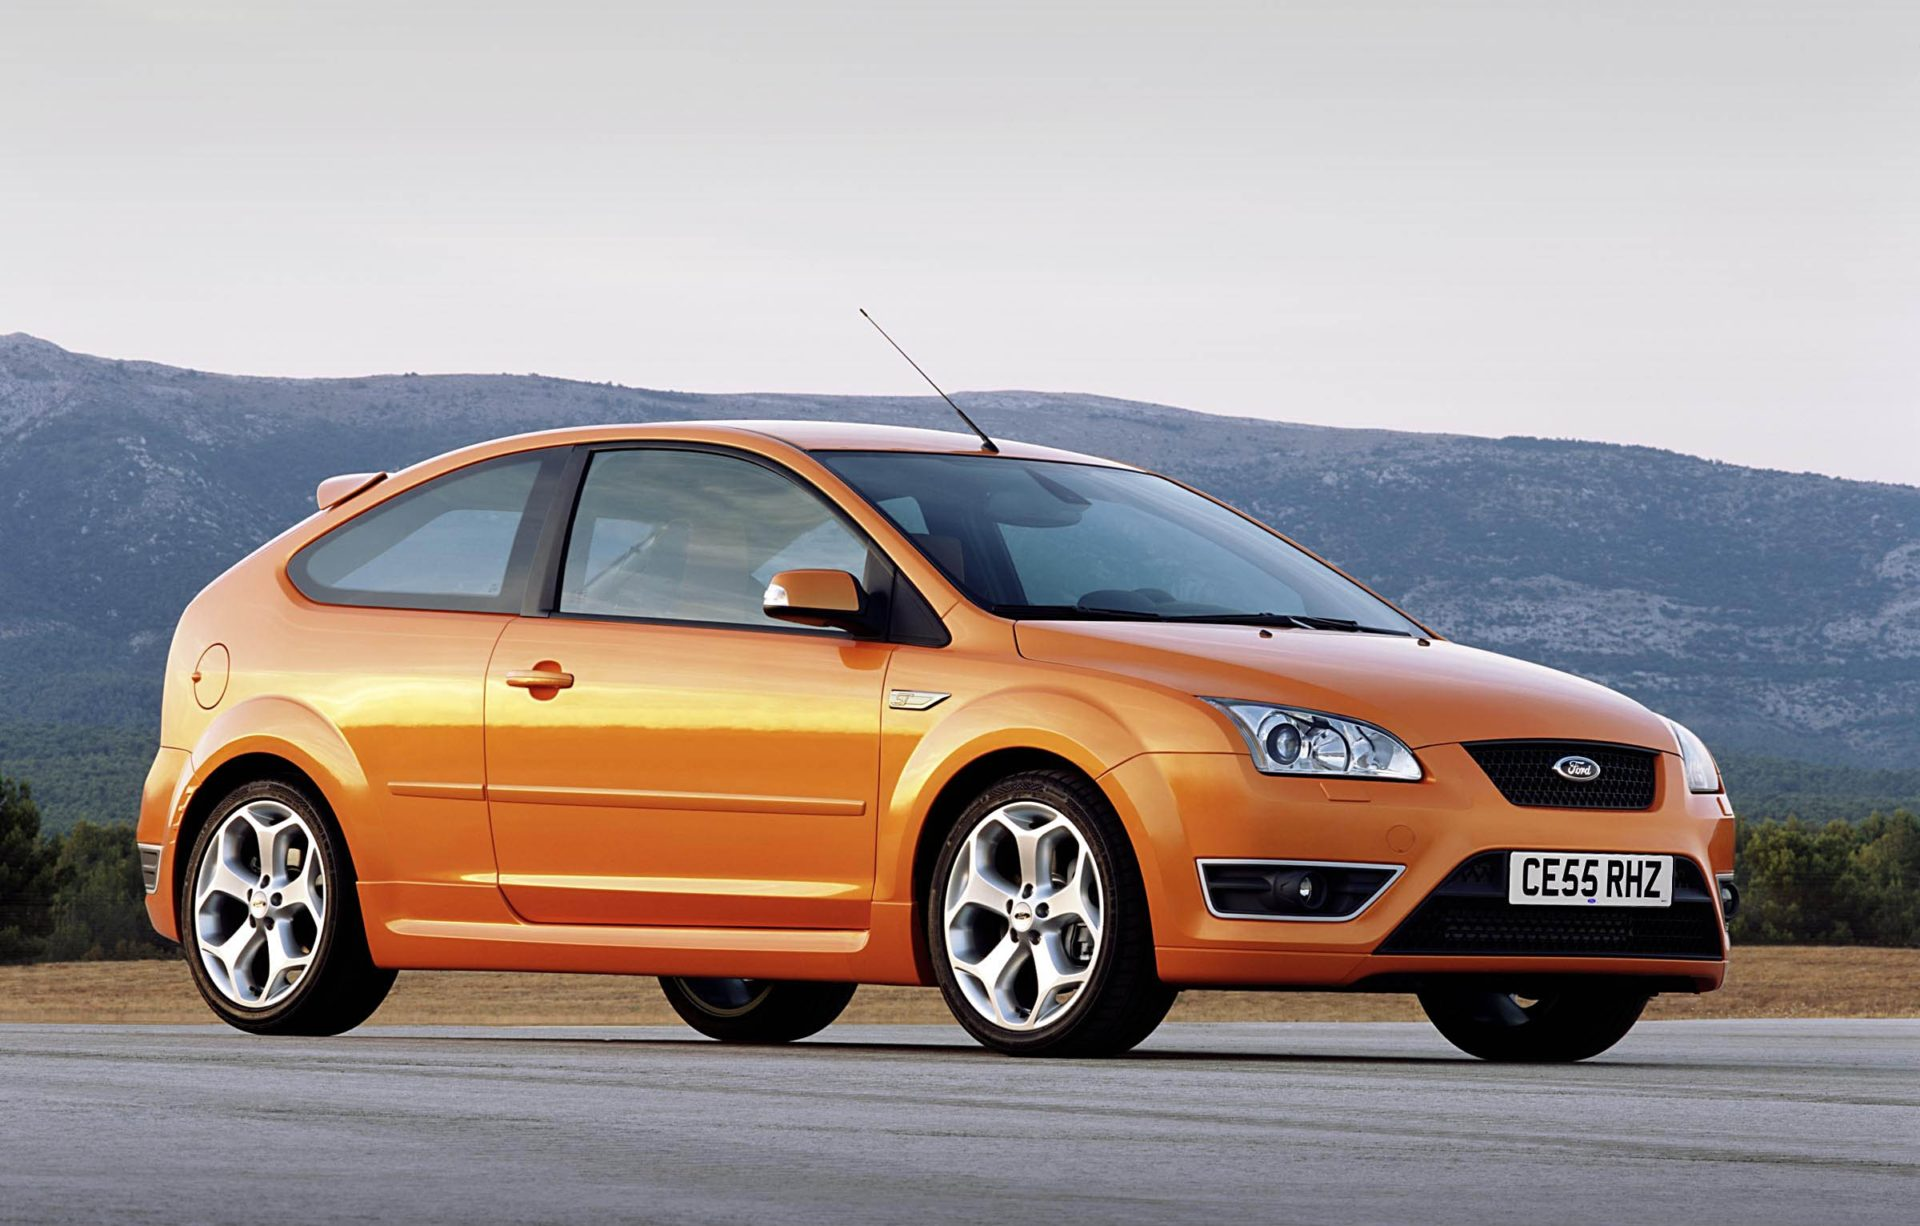 Gary, Ford Focus, Ford Focus ST, Focus, Focus ST, performance ford, fast ford, modified ford, hot hatch, car, cars, classic cars, motoring, automotive, adrian flux, not2grand, www.not2grand.co.uk, car, cars, featured